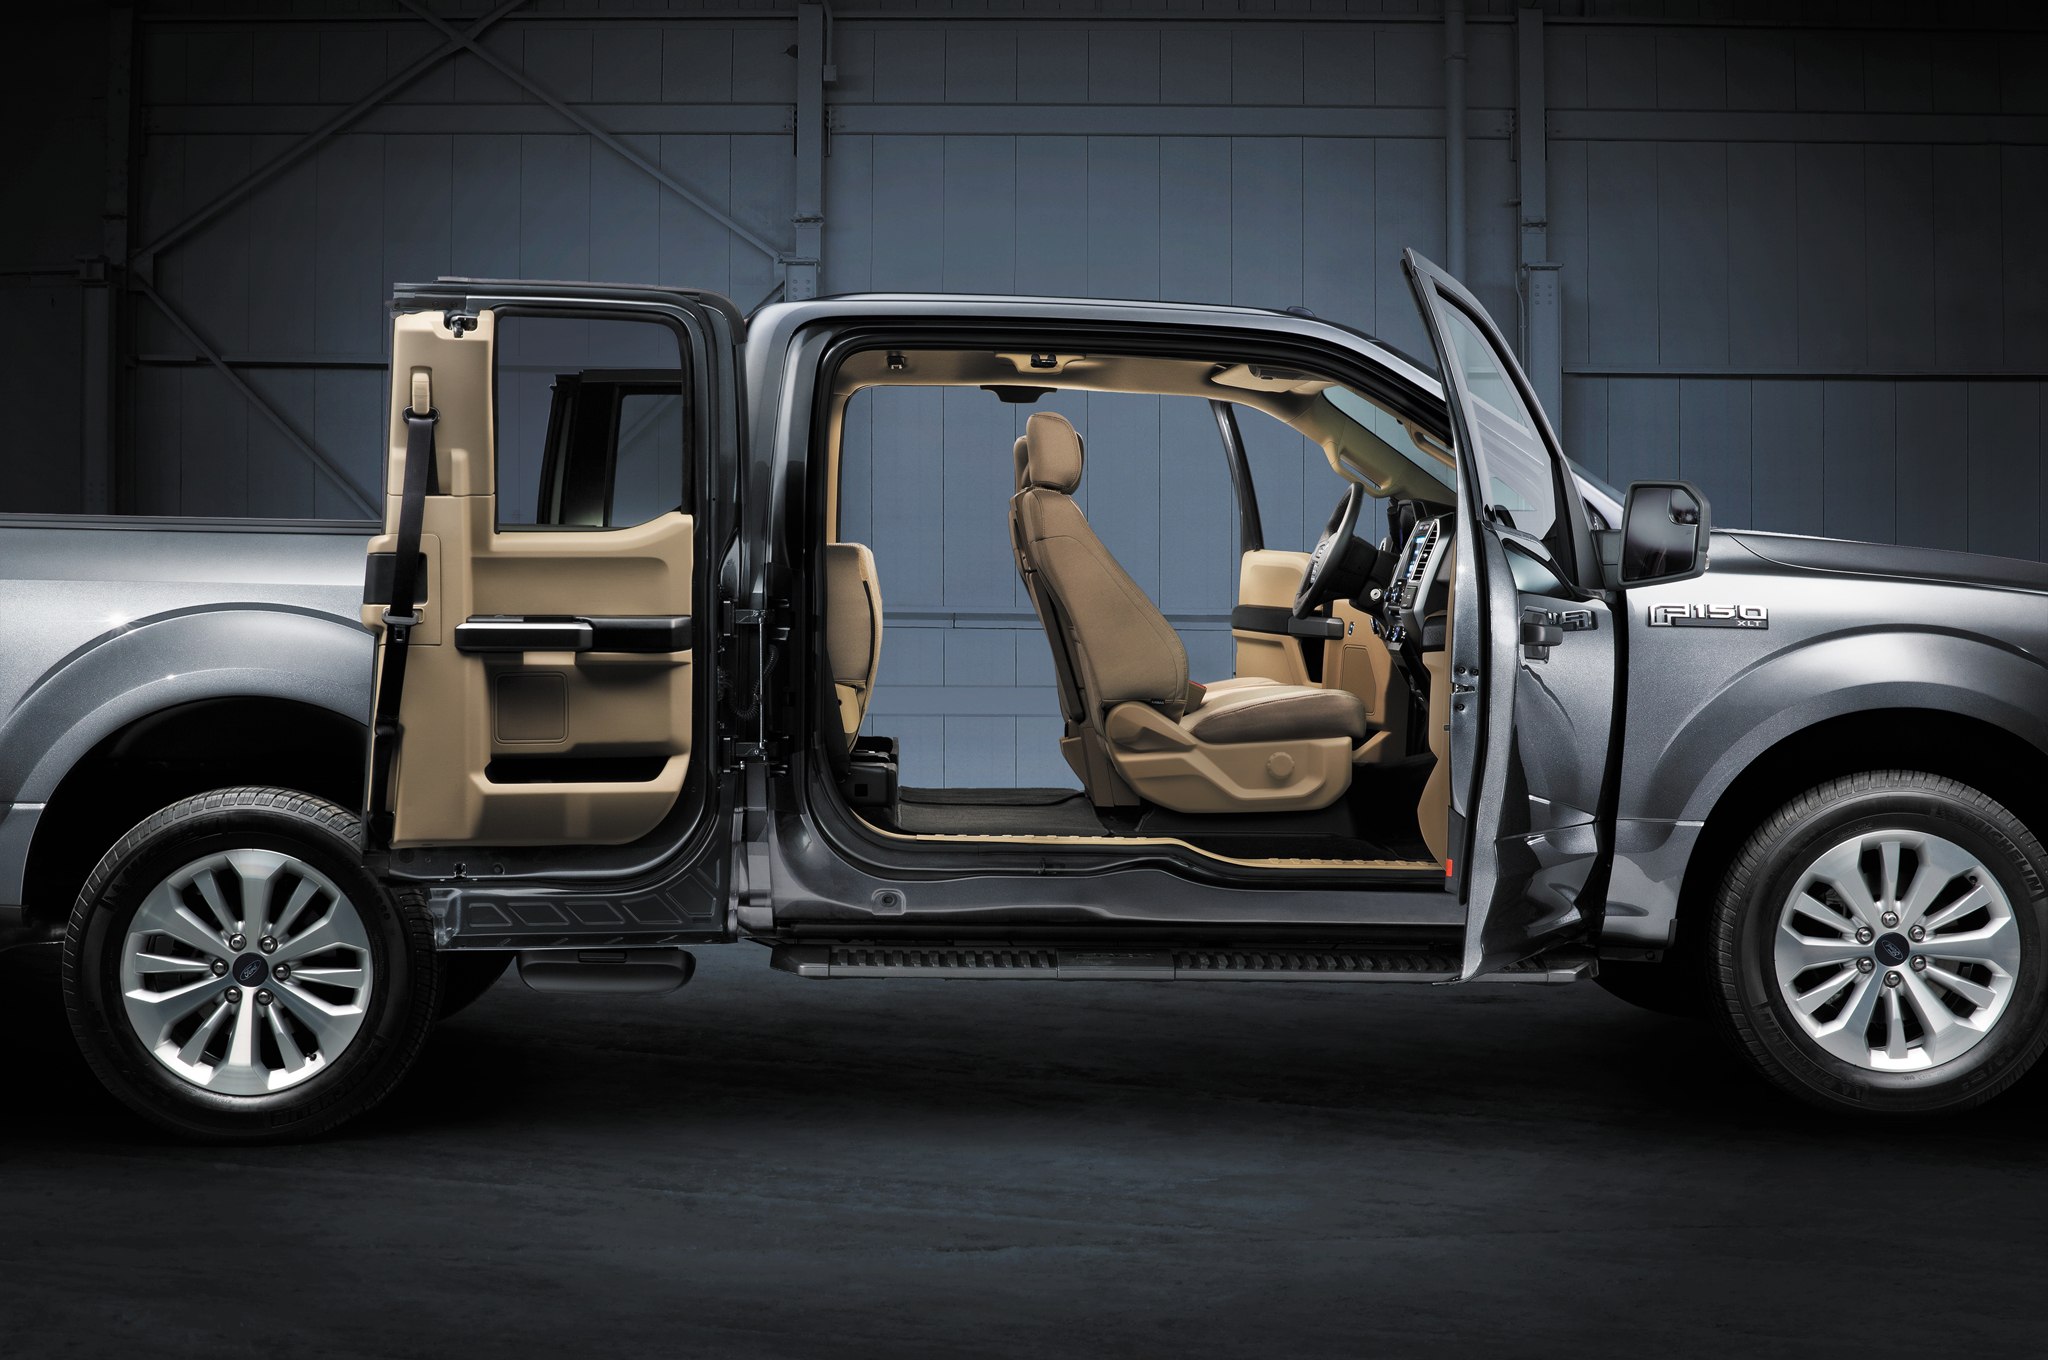 Http   Image.motortrend.com F  Blogs 1401_2015_ford_f_150_to_shine_bright_all_year_long 64912303 2015  Ford F 150 Interior View | Leith Ford Blog